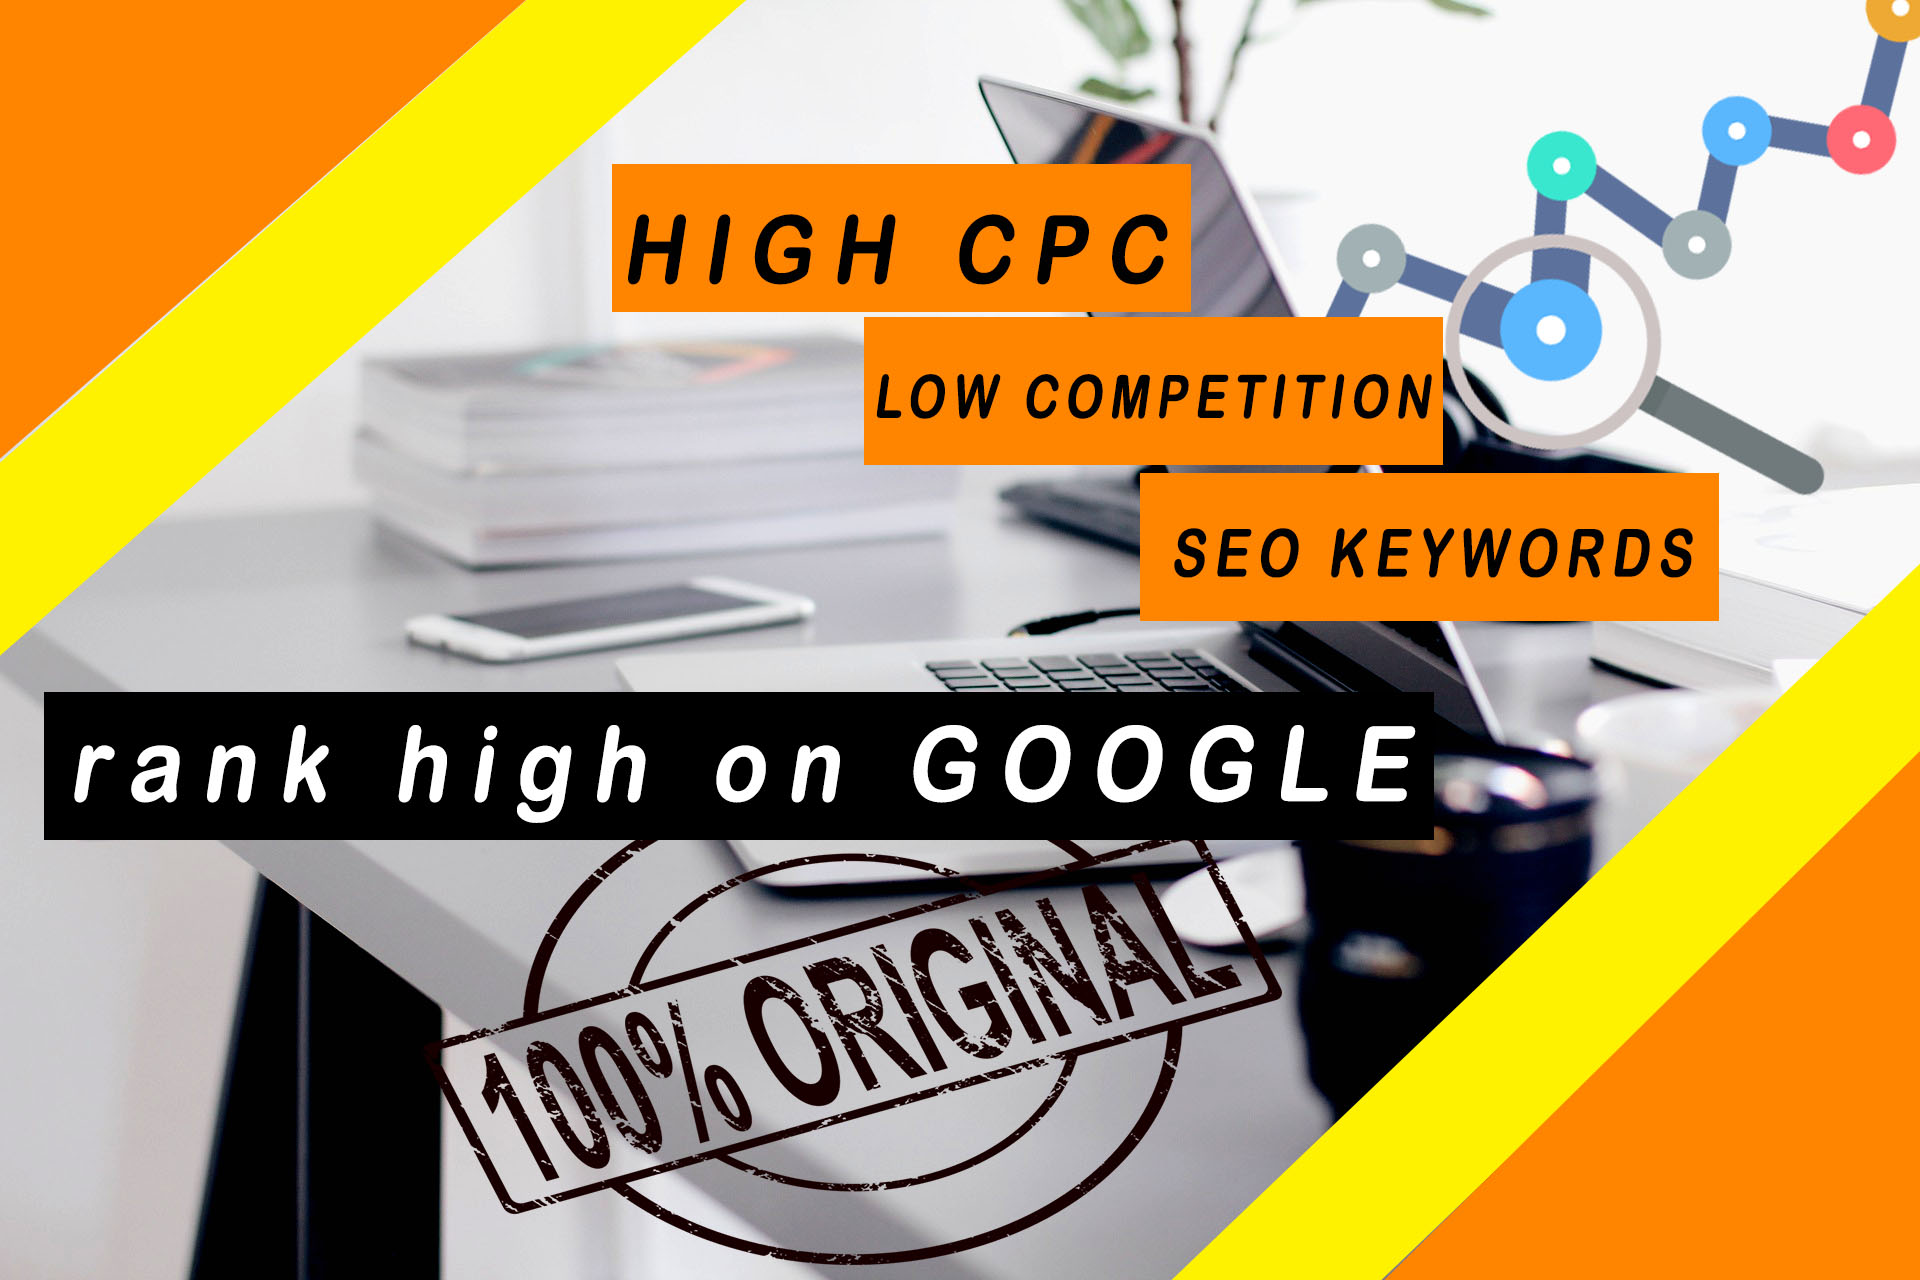 I will do high cpc,  low competition,  SEO keyword research for you